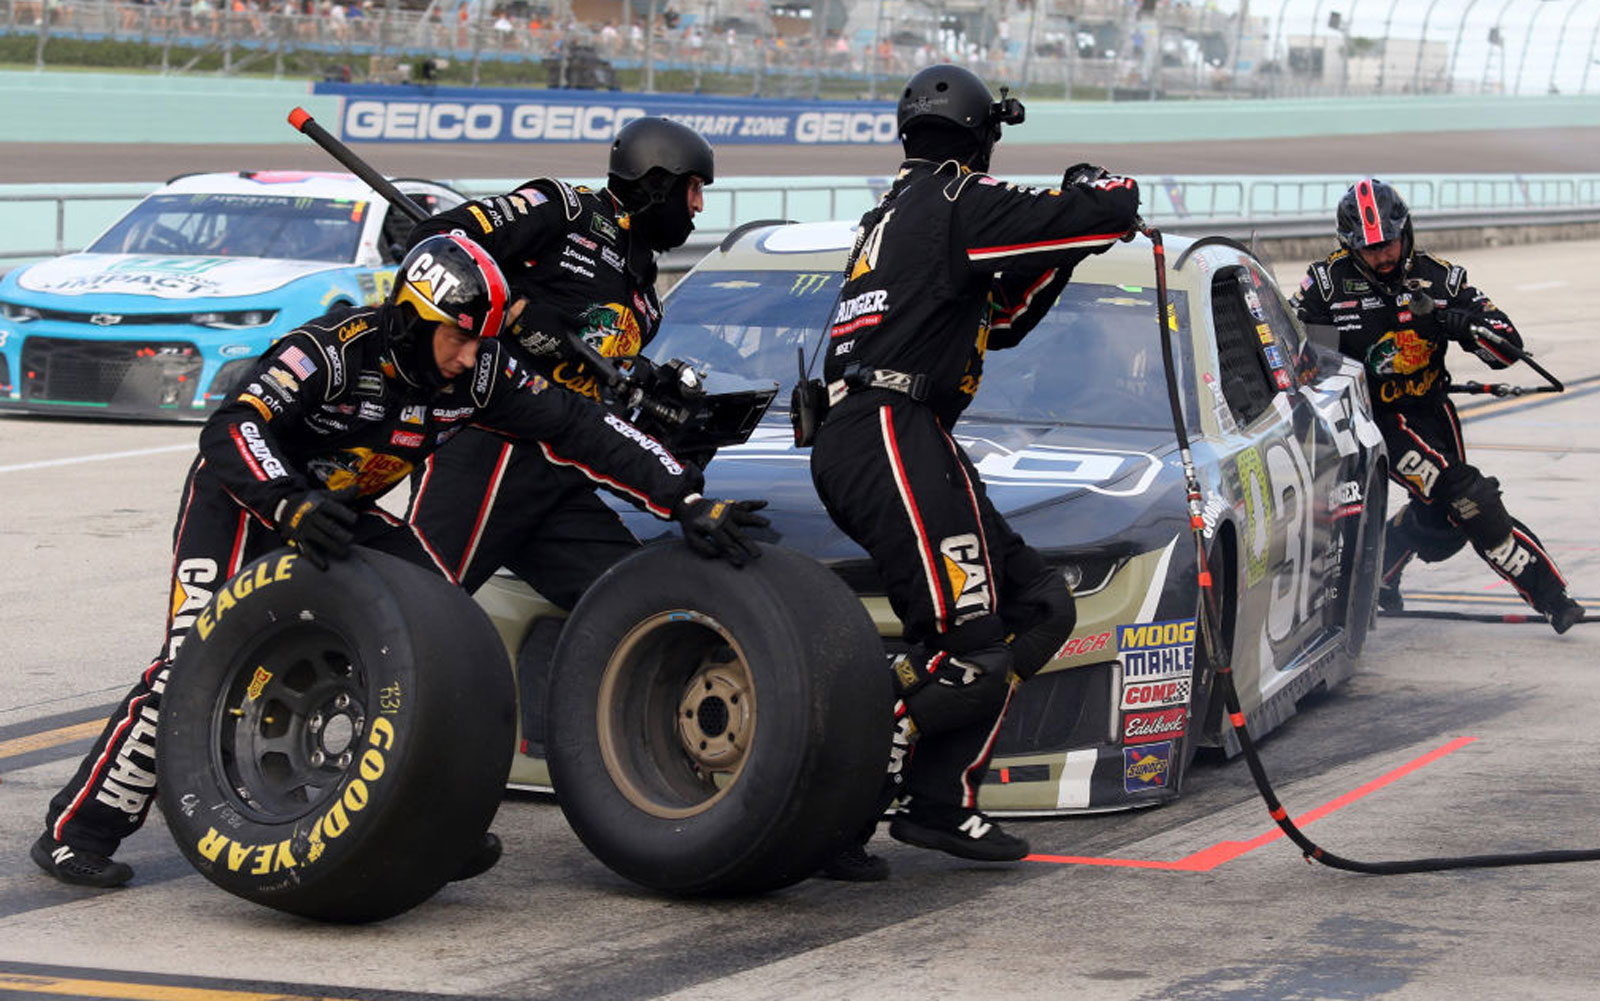 United Sends Its Employees to NASCAR Pit Crew Training to Help With Flight Turnaround Times